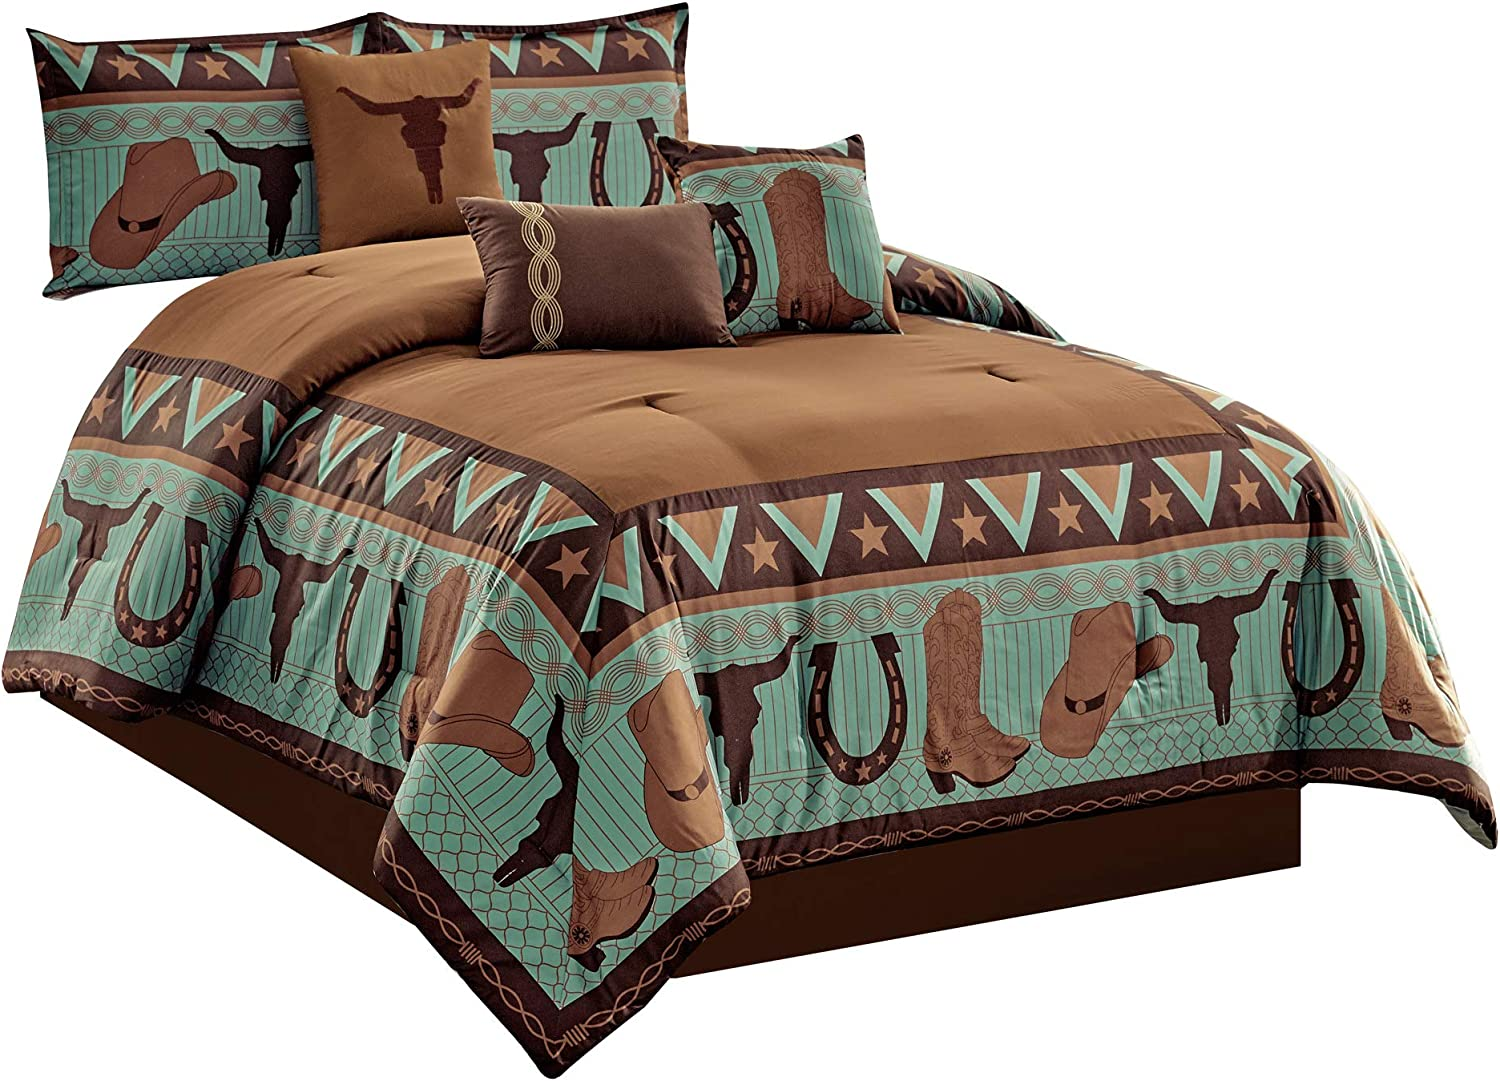 WPM WORLD PRODUCTS MART 7 Piece Cabin Lodge Comforter Set Brown/Teal Horseshoe, Horse, Barb Wired Cow Boy Hat Boot Print Southwestern Cowboy Queen Size Bedding- Western (Queen)